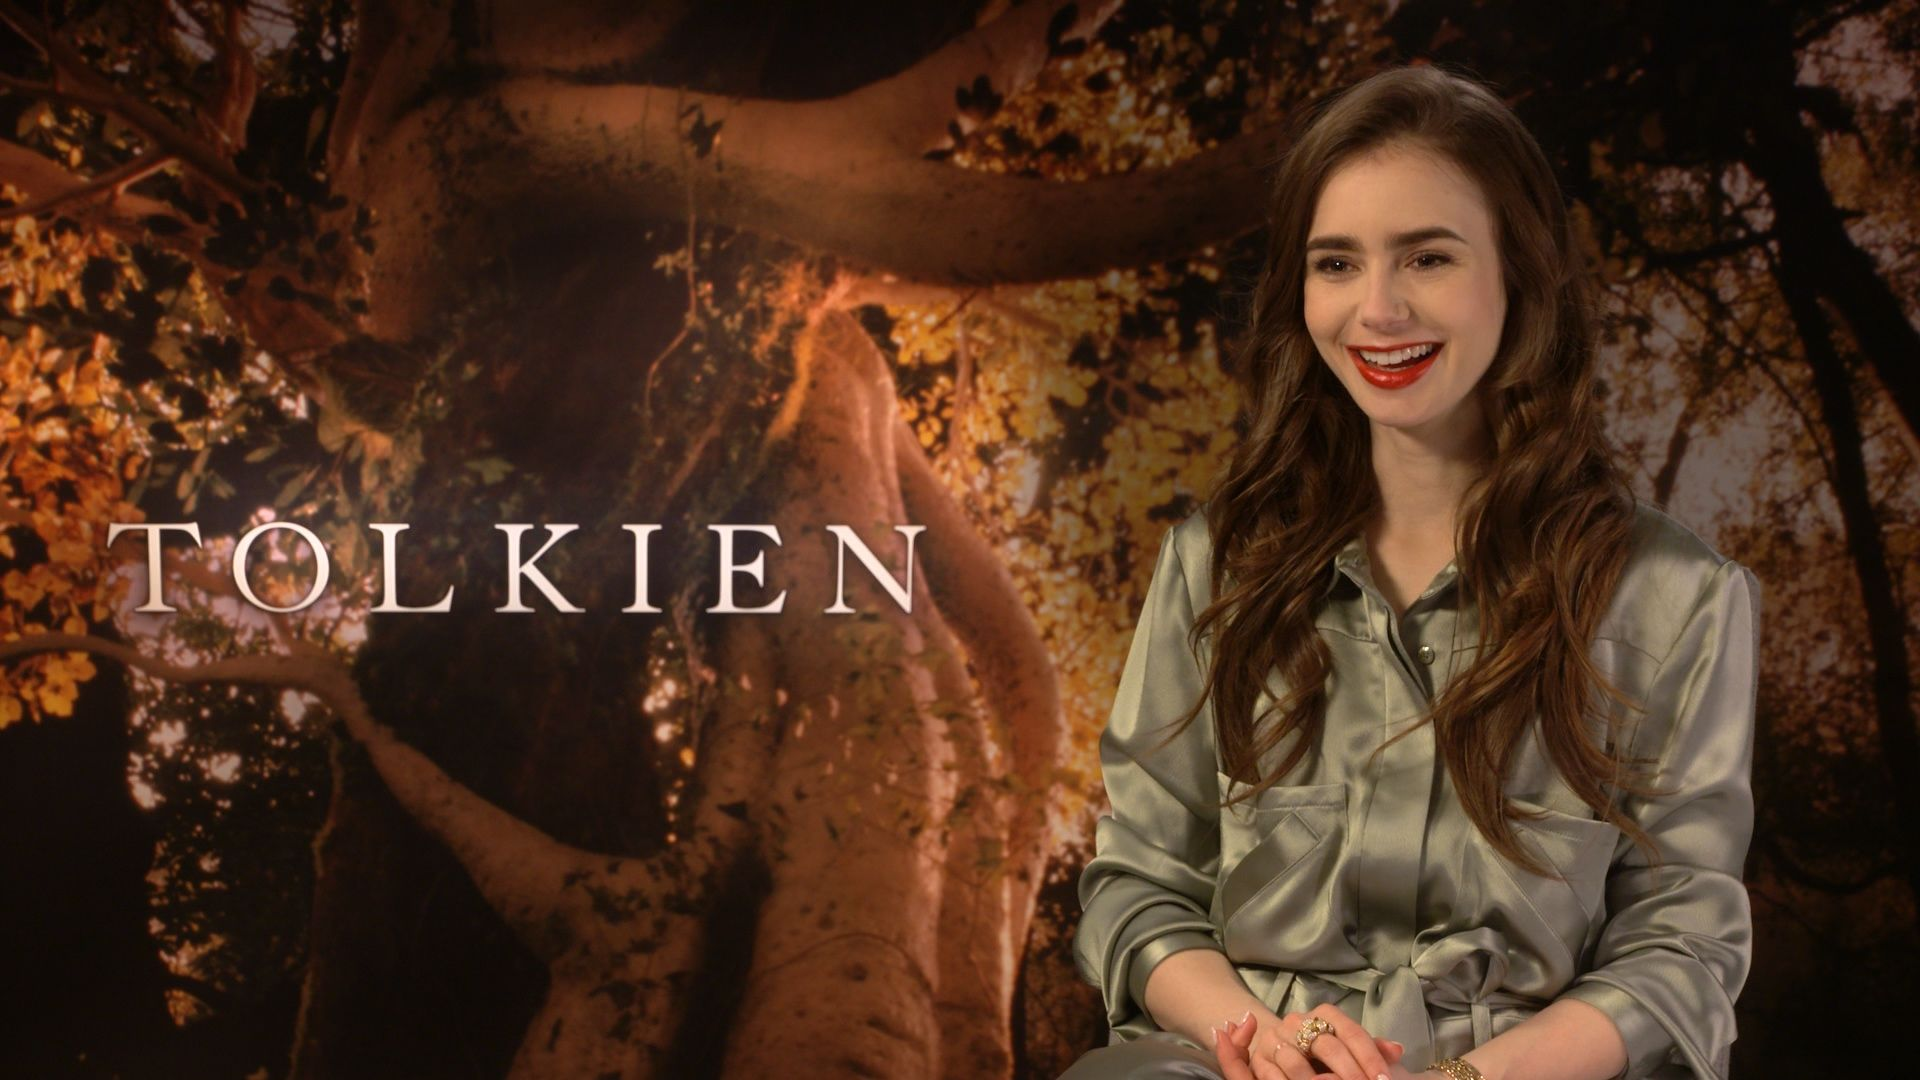 Movie Poster 2019: Lily Collins On Tolkien And Having Fun With Accents And